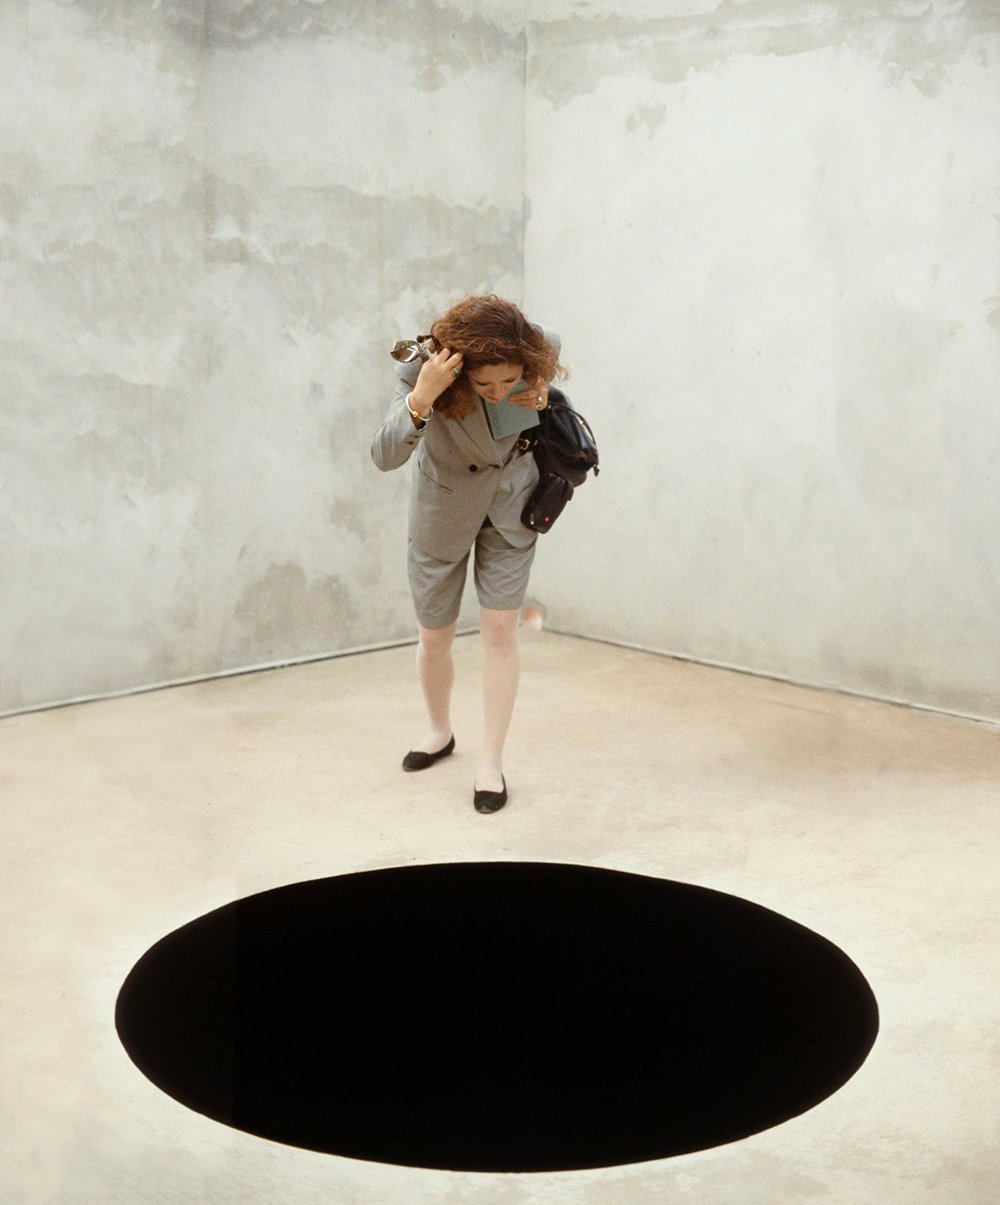 a woman stares into a black hole on the ground